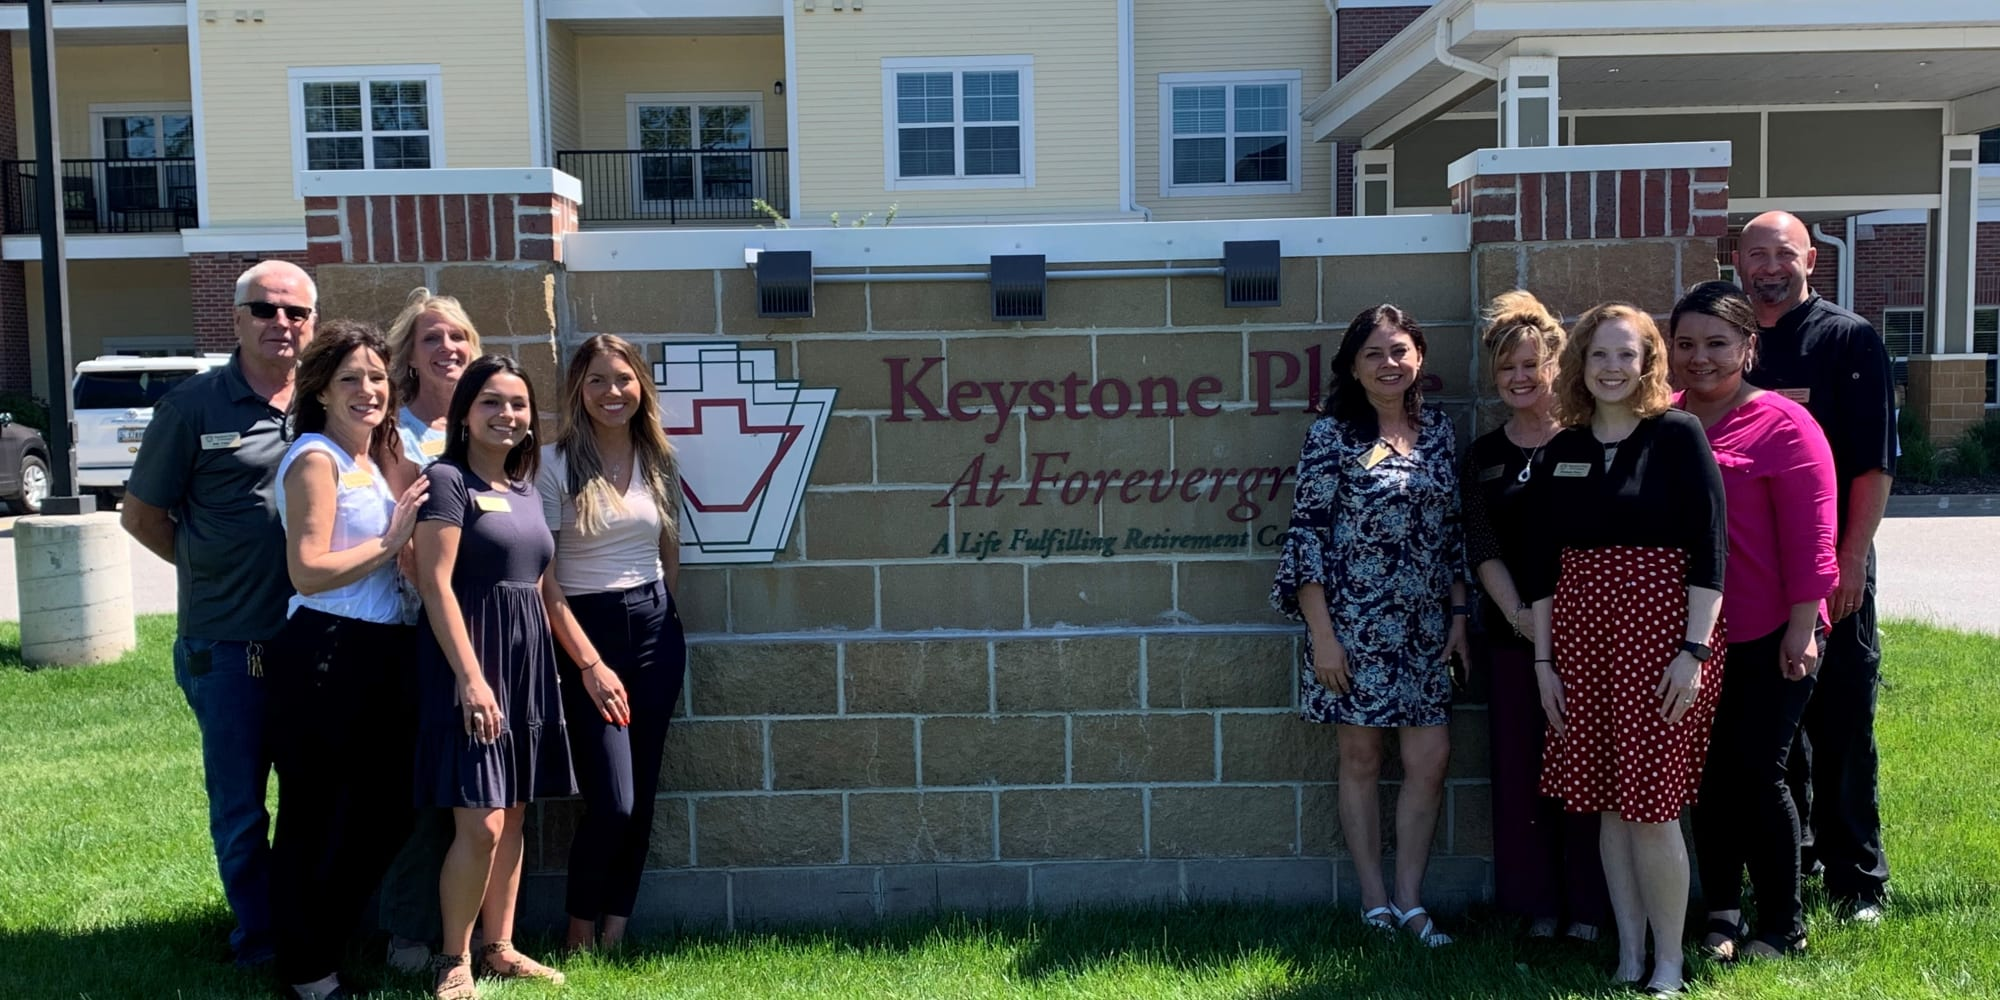 Our Team at Keystone Place at Forevergreen in North Liberty, Iowa